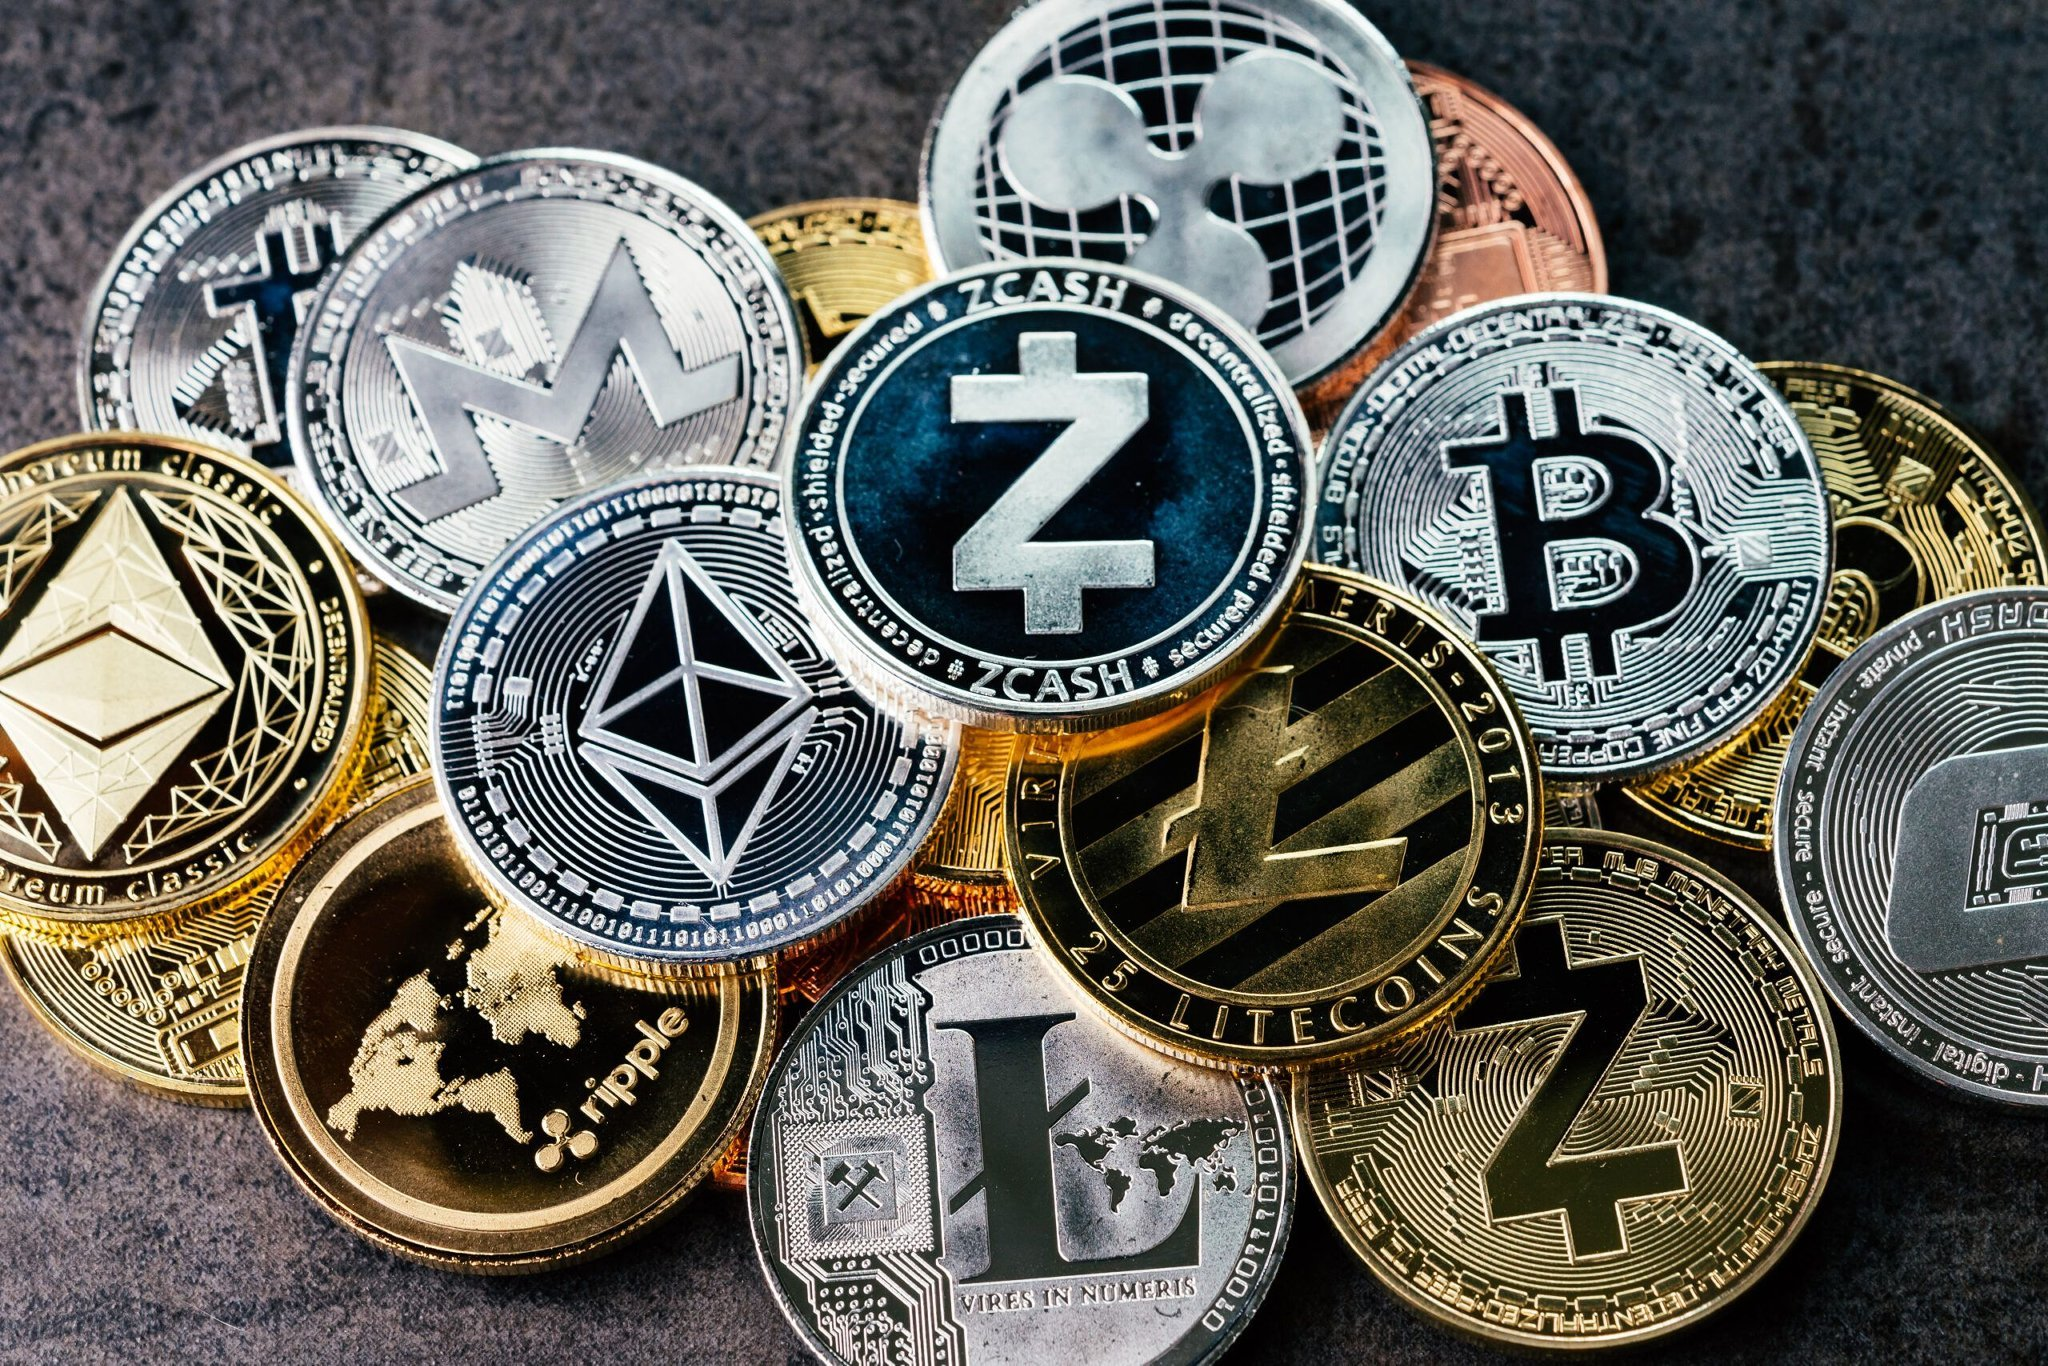 Not Just Bitcoin: All The Cryptocurrencies You've Never Heard Of